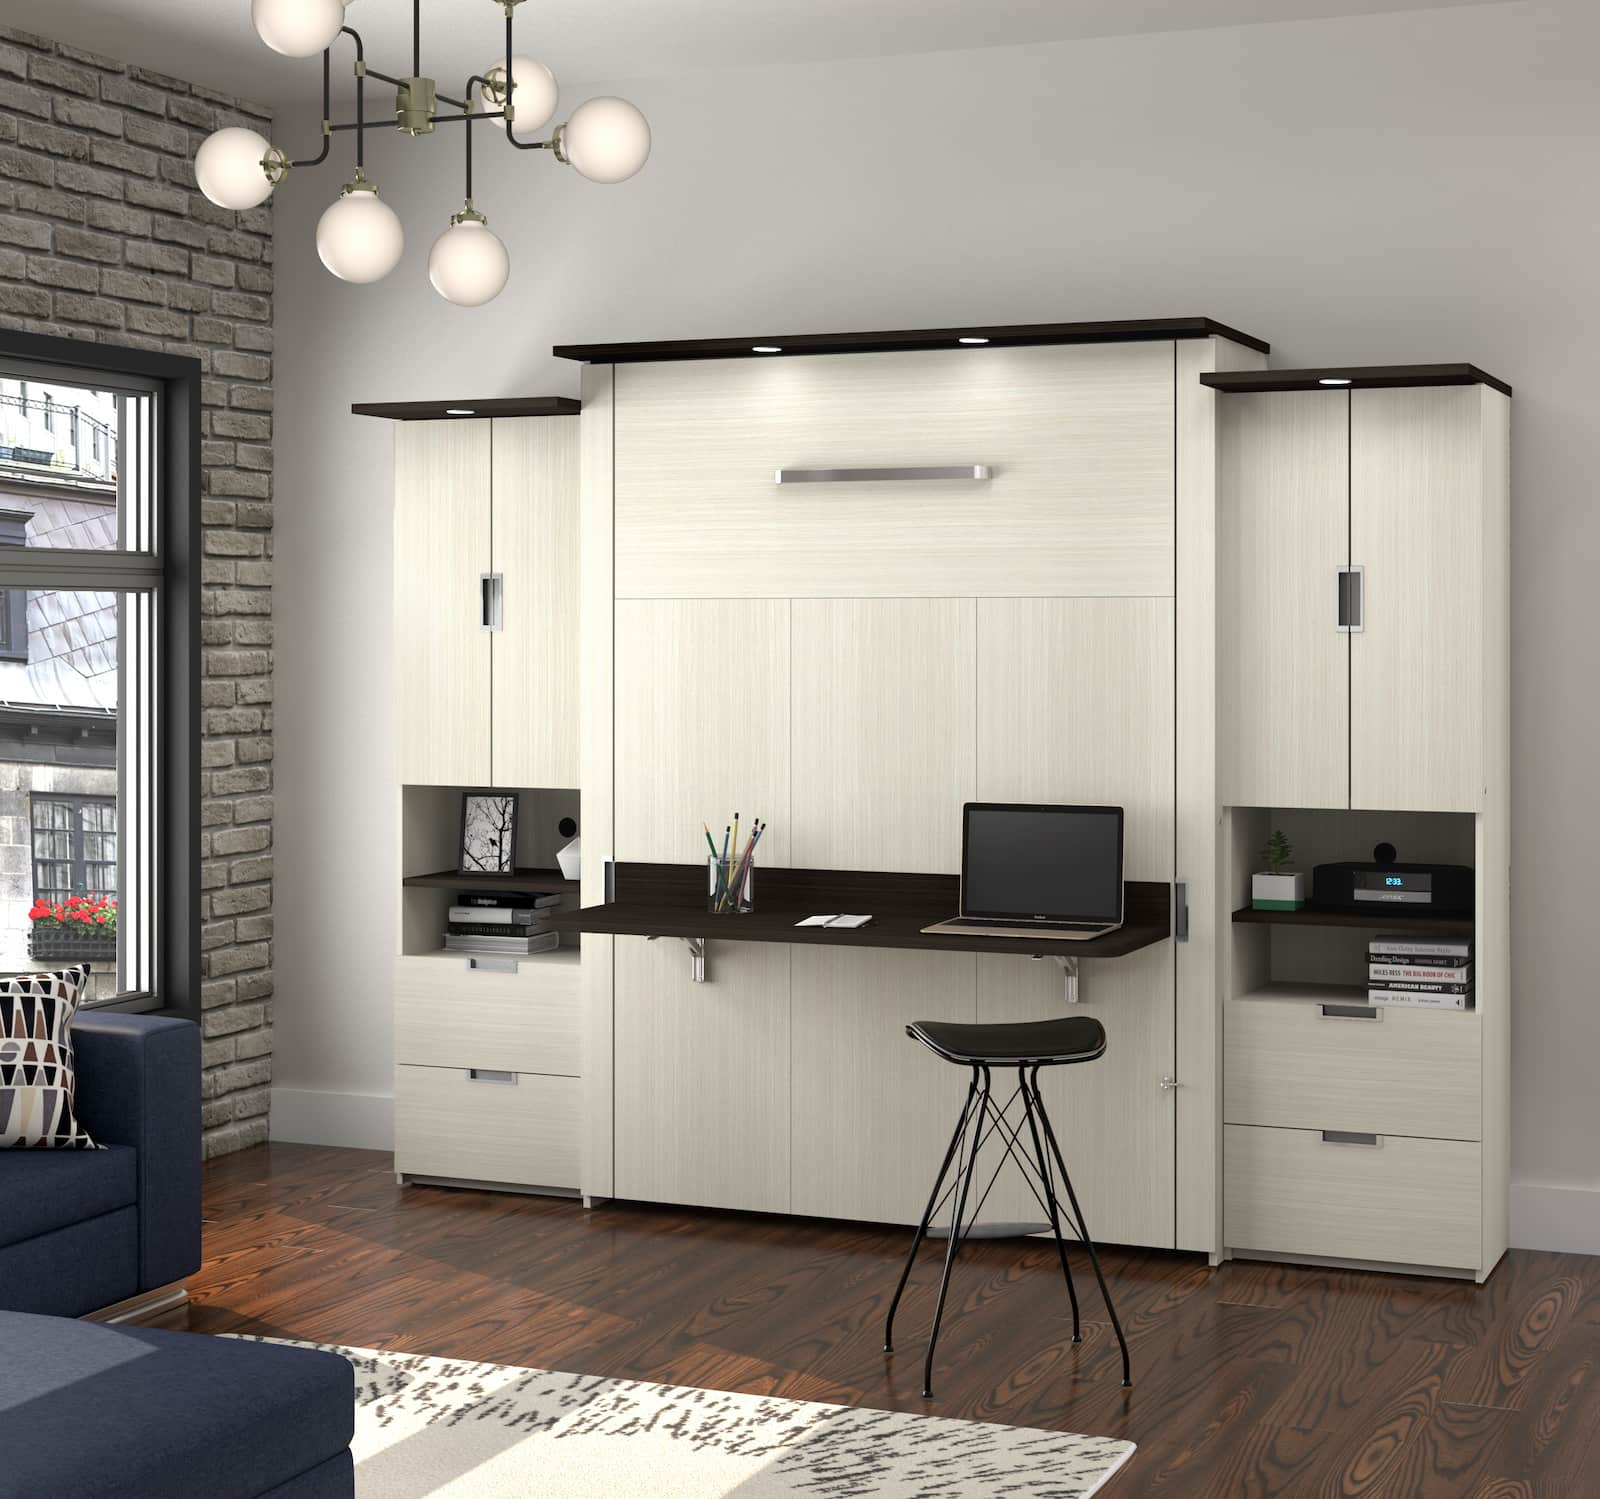 beige and brown murphy bed with built-in desk and side shelving units and hanging lights